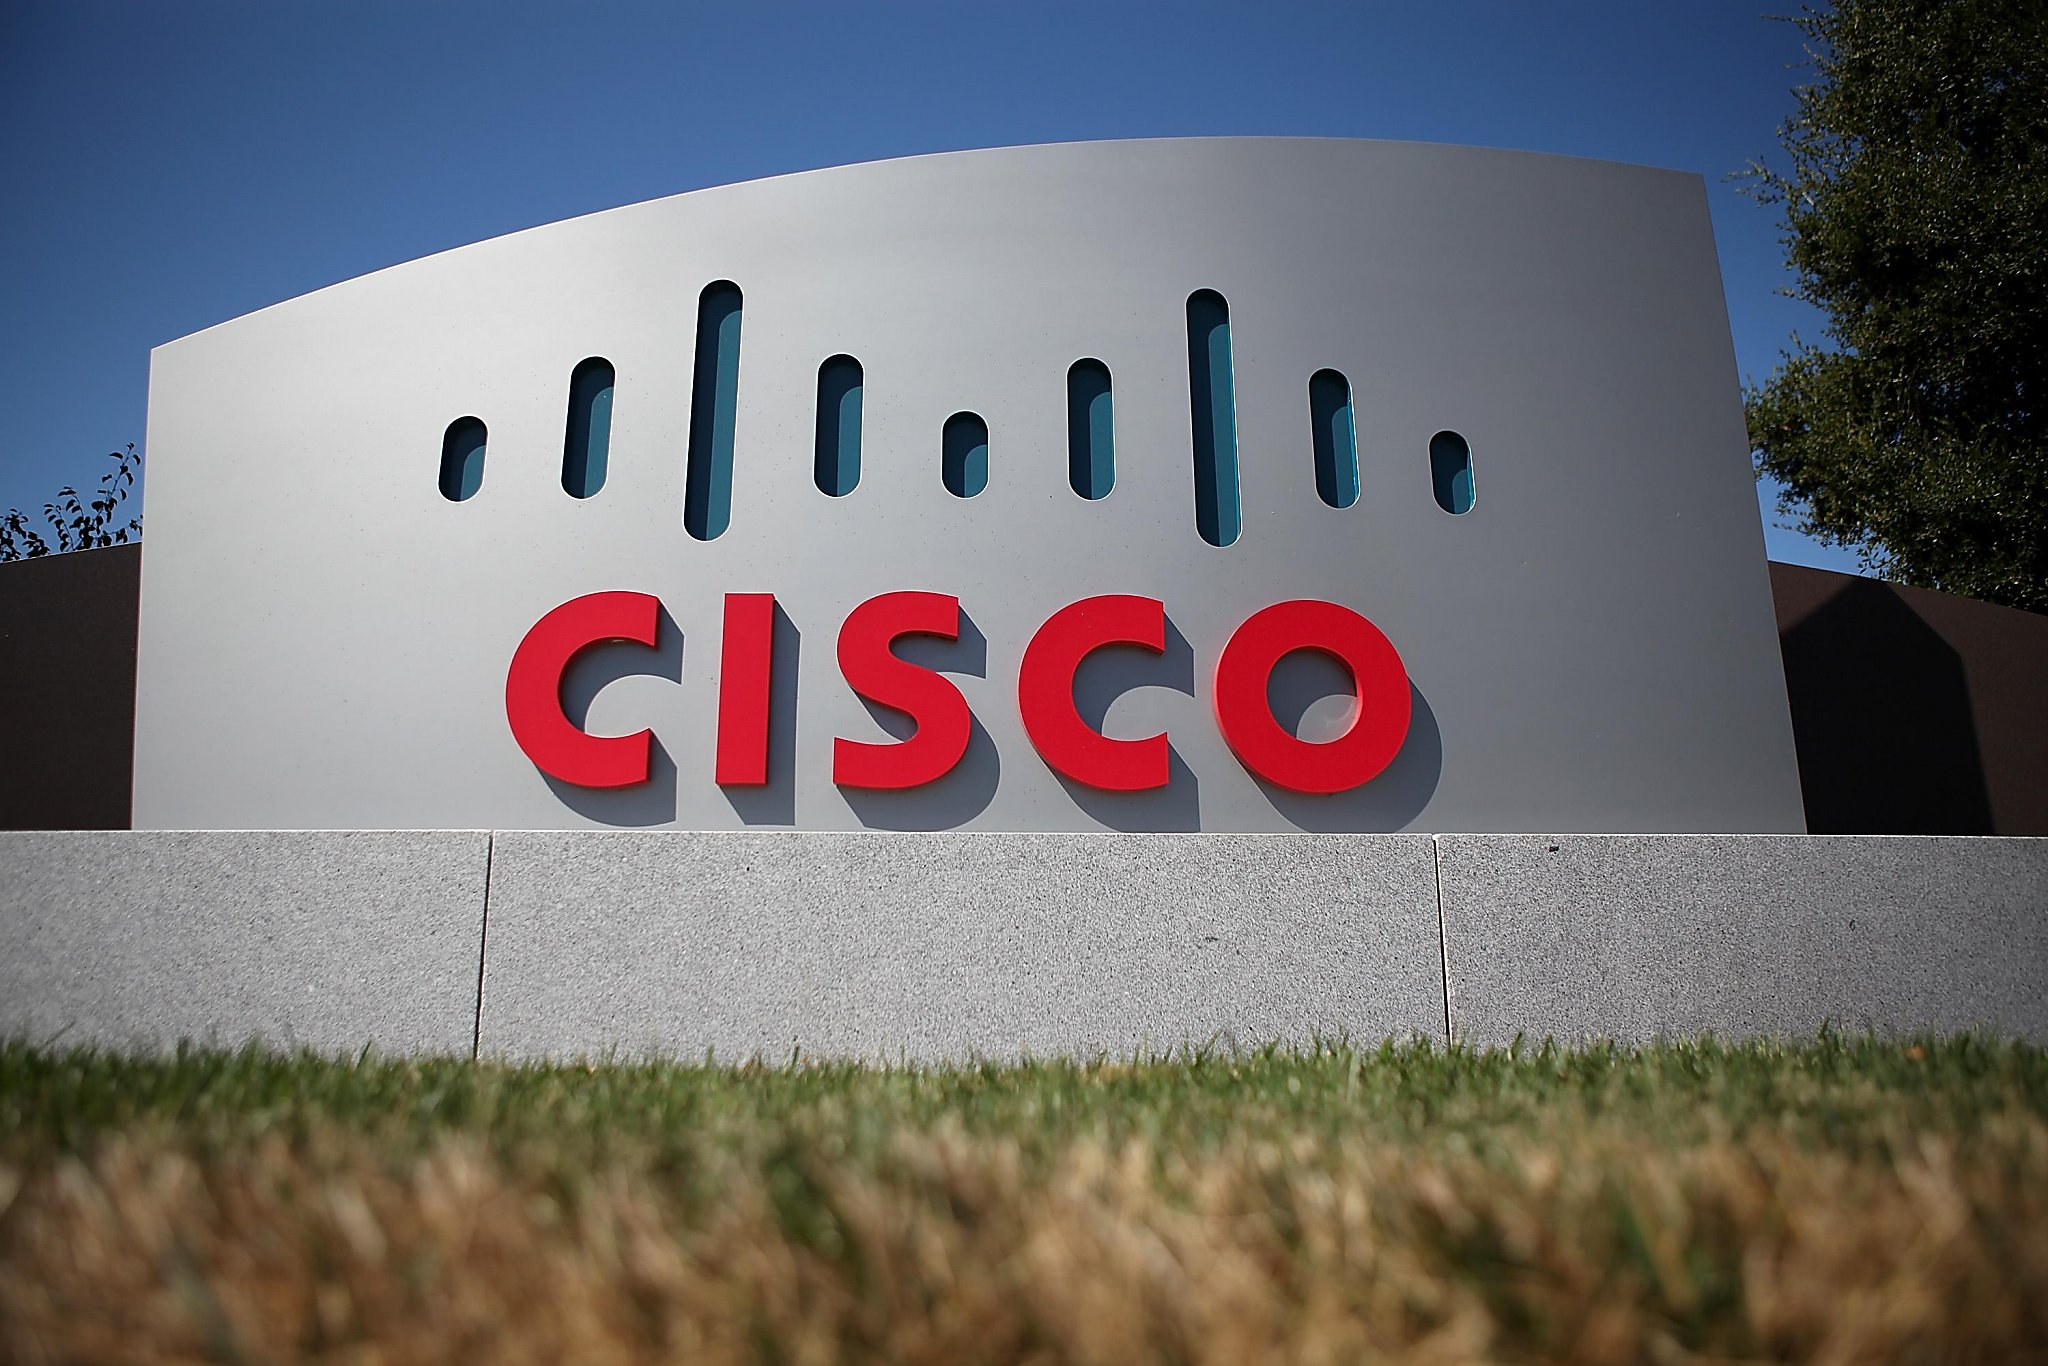 Activists push tech to address caste discrimination after Cisco lawsuit